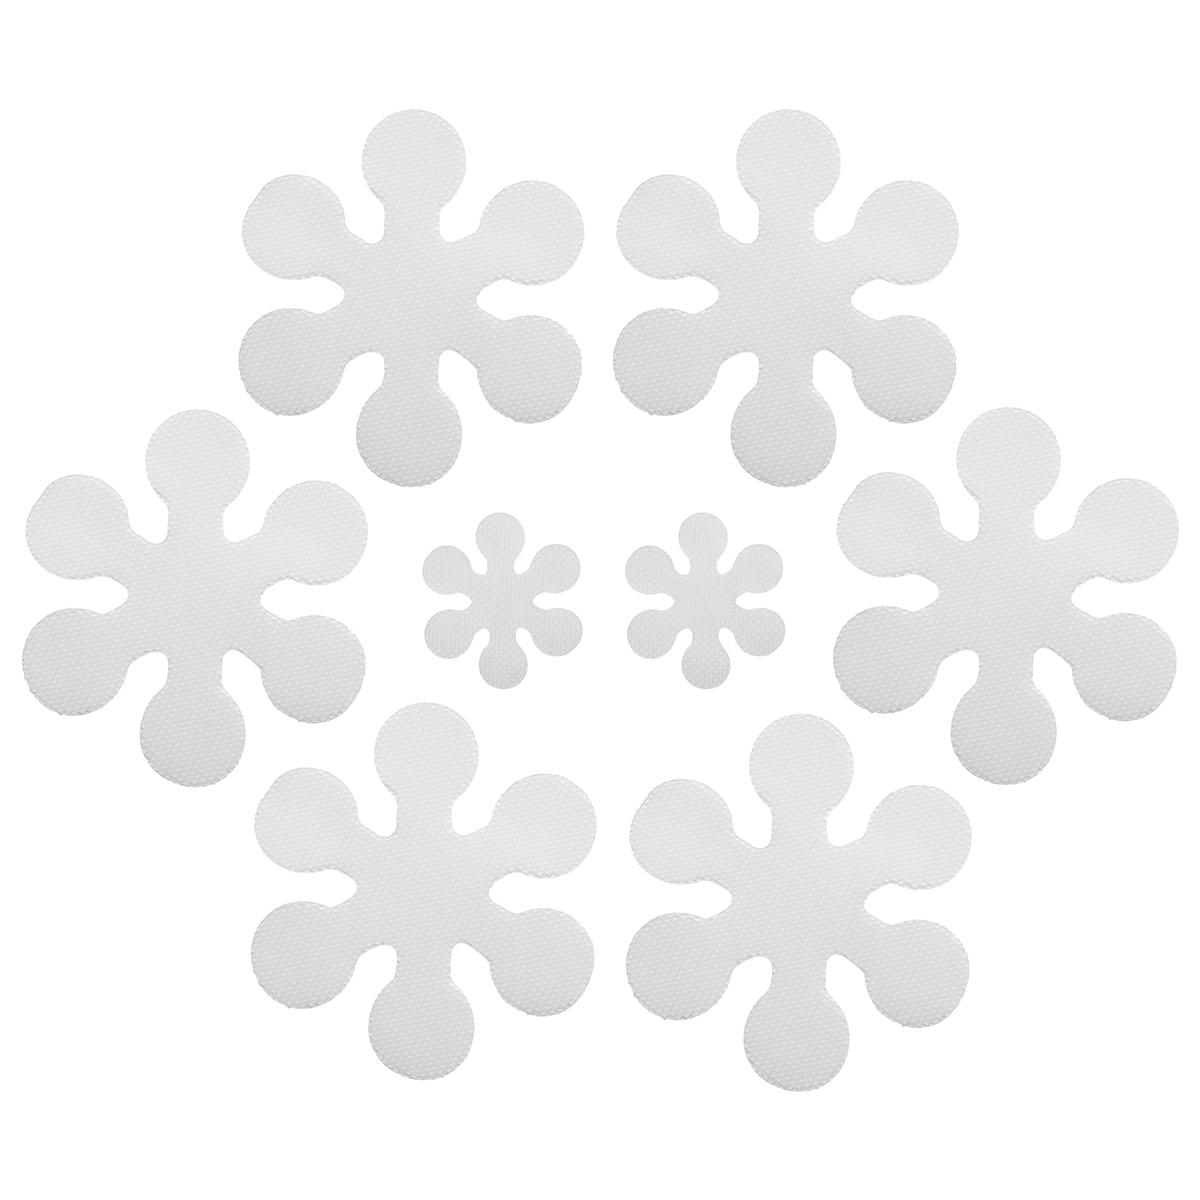 8Pcs Snowflake Shape Anti Skid Vasca da bagno impermeabile Treads Bagno Stickers Decorazioni